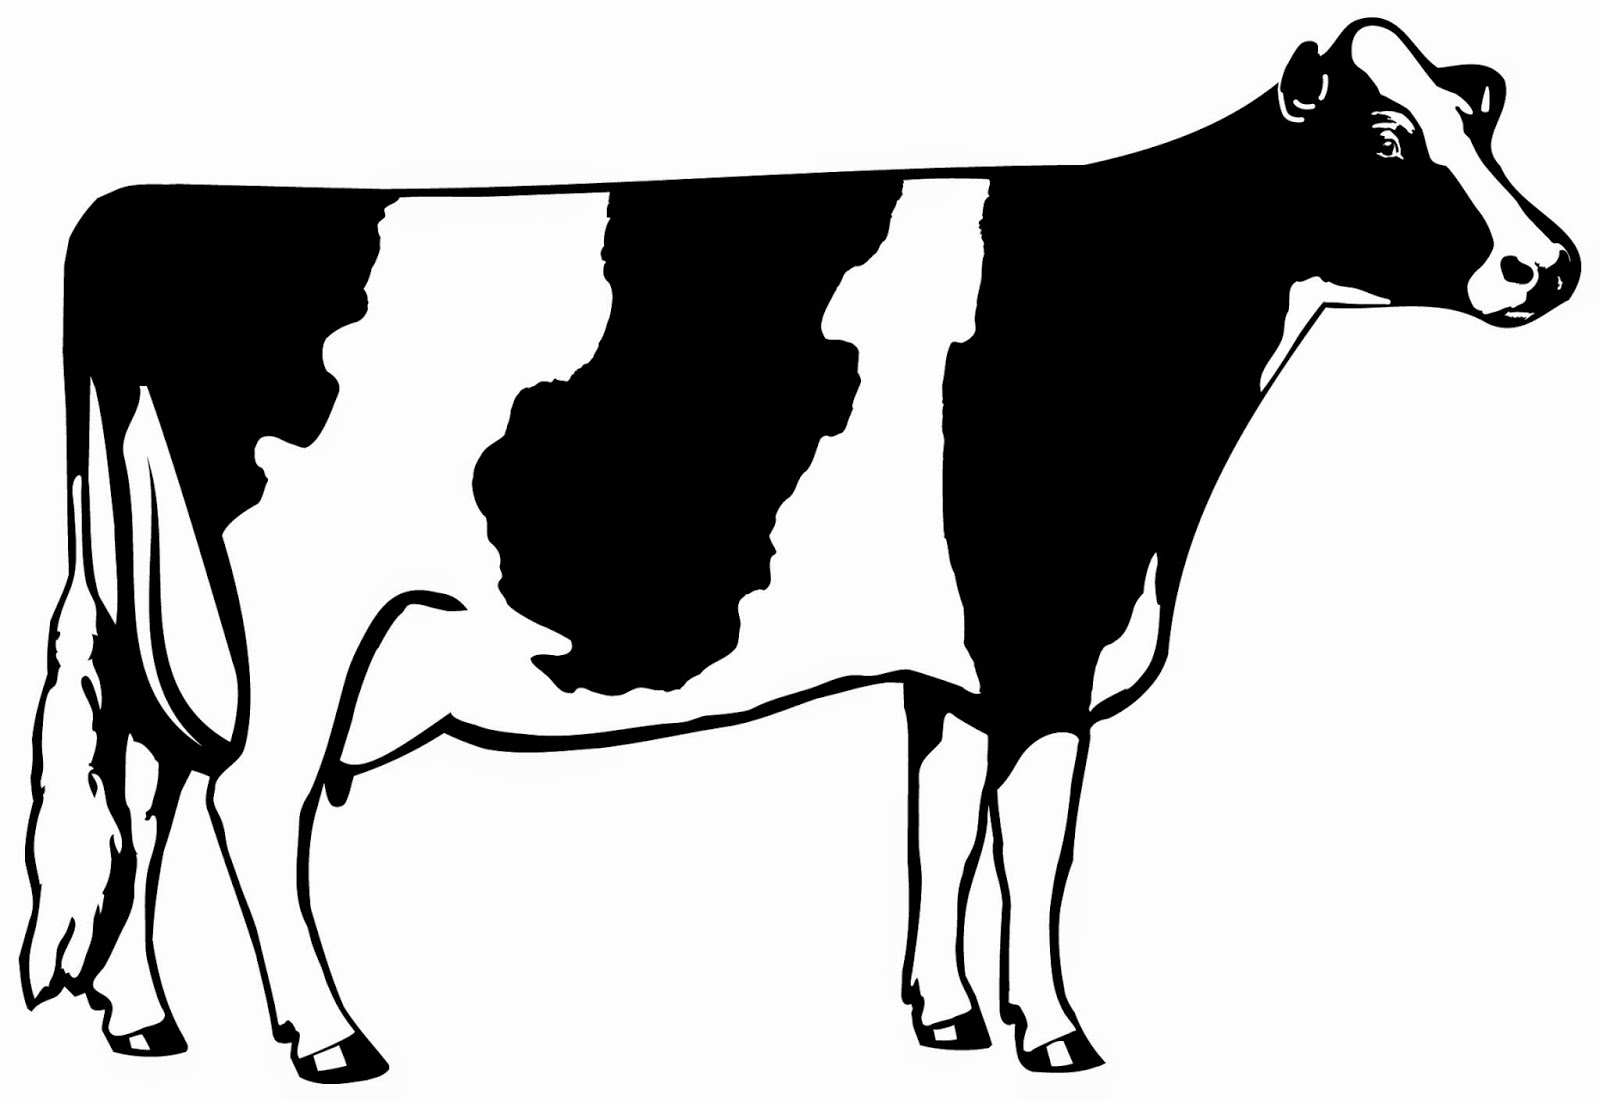 Beef feet clipart - Clipground for Beef Clipart Black And White  146hul